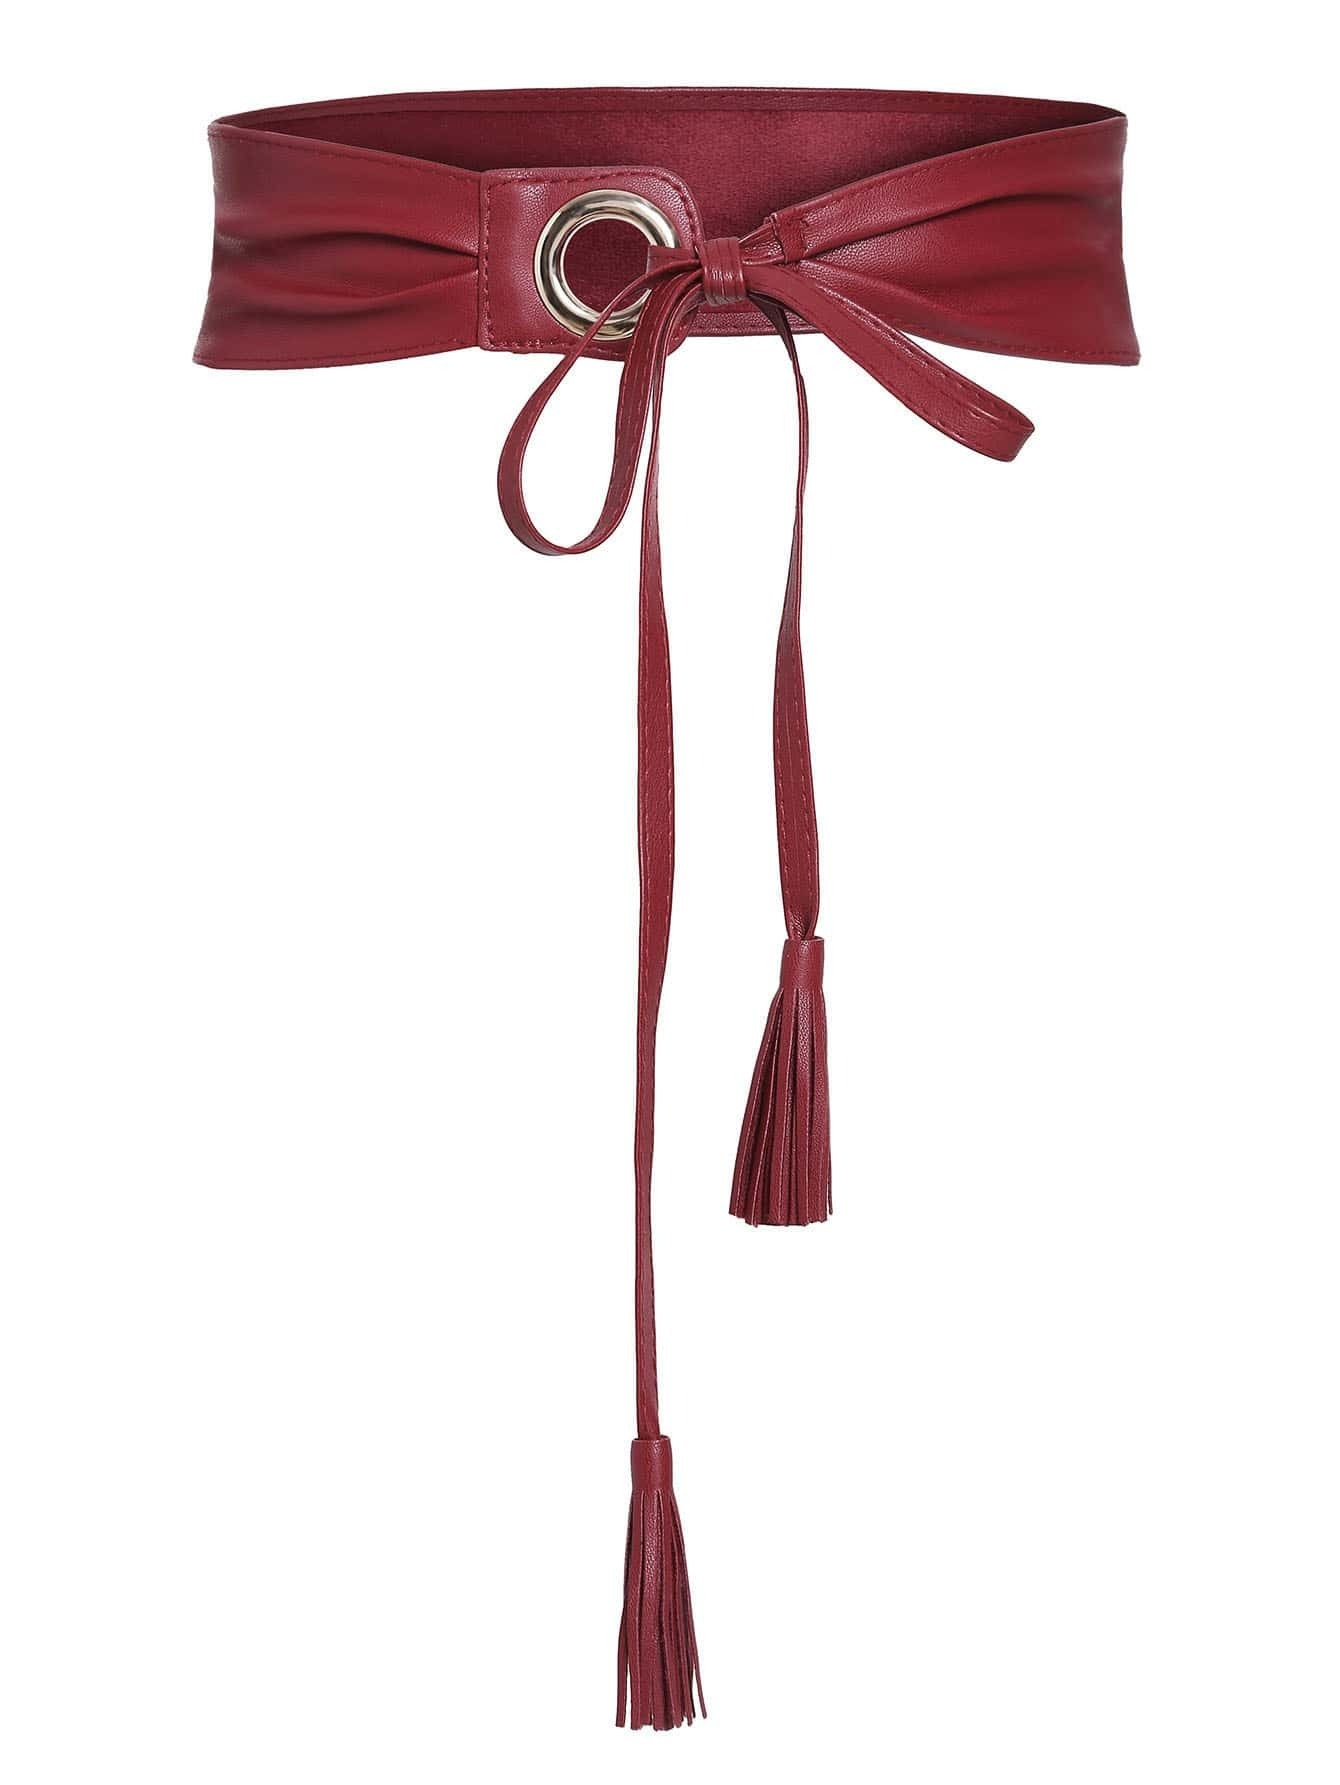 Red Eyelet Tassel Tie Faux Leather Waist BeltRed Eyelet Tassel Tie Faux Leather Waist Belt<br><br>color: Red<br>size: None